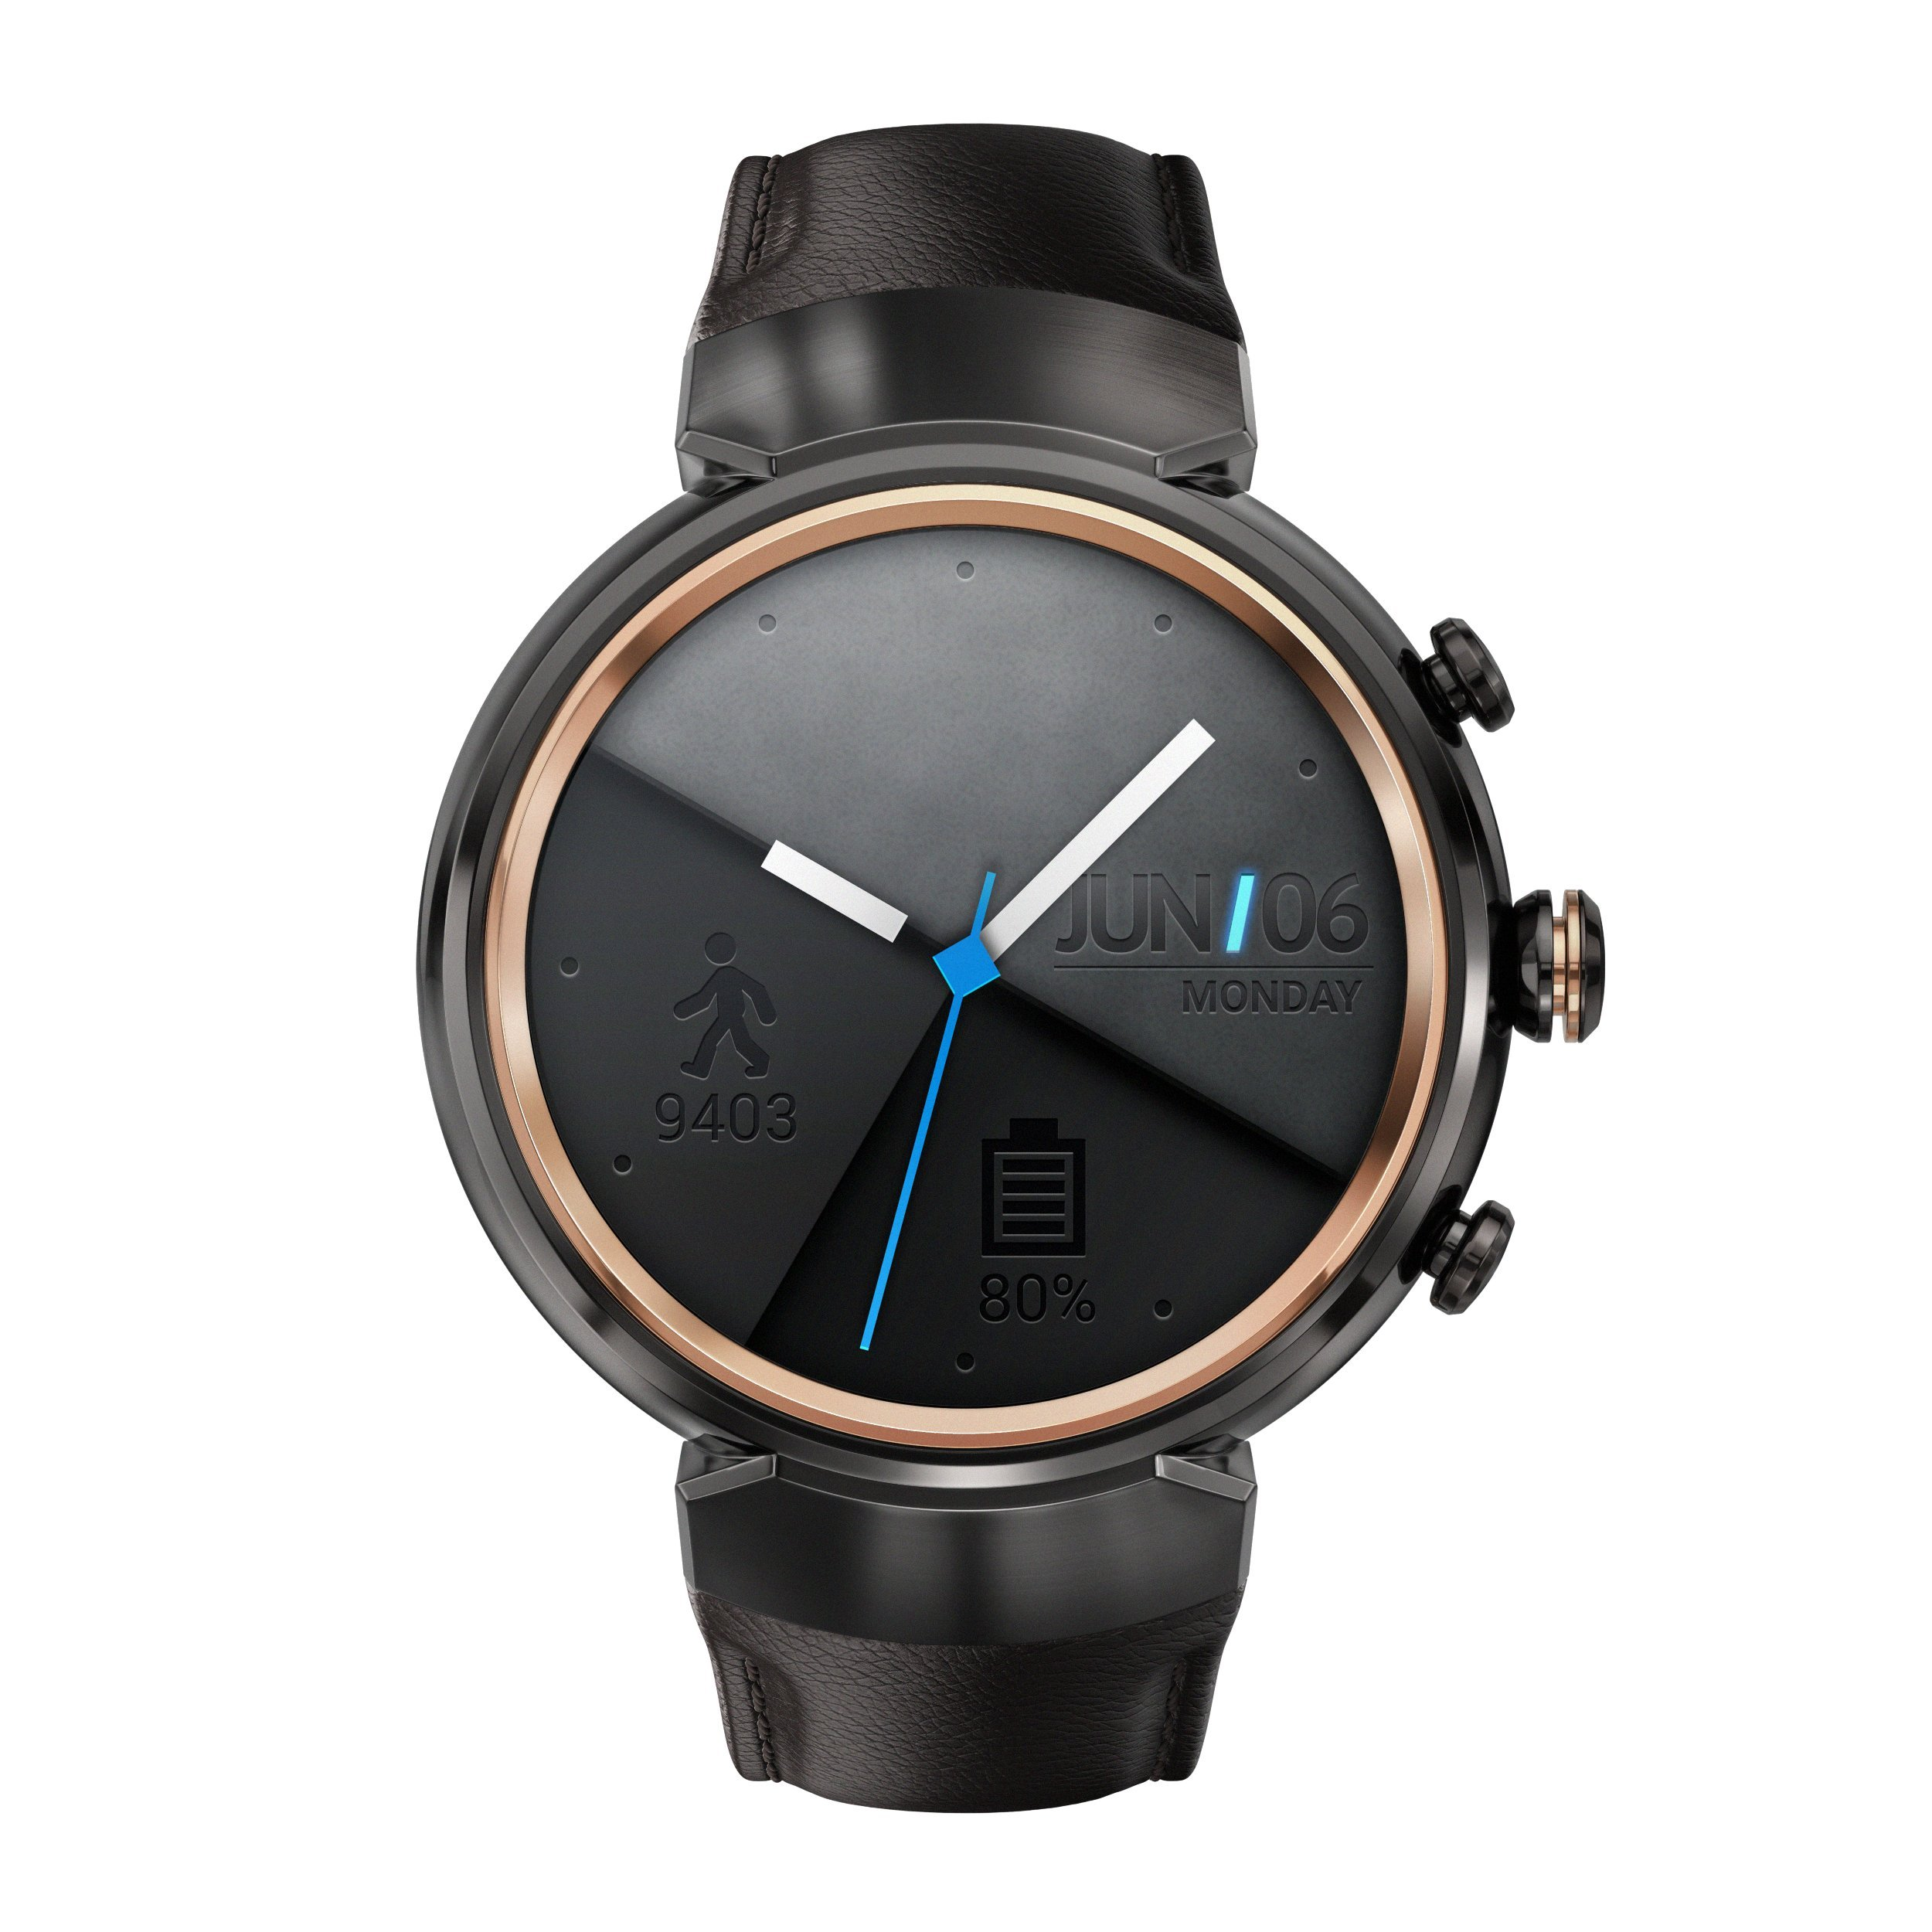 ASUS ZenWatch 3 WI503Q-GL-DB 1.39-inch AMOLED Smart Watch with dark brown leather strap by Asus